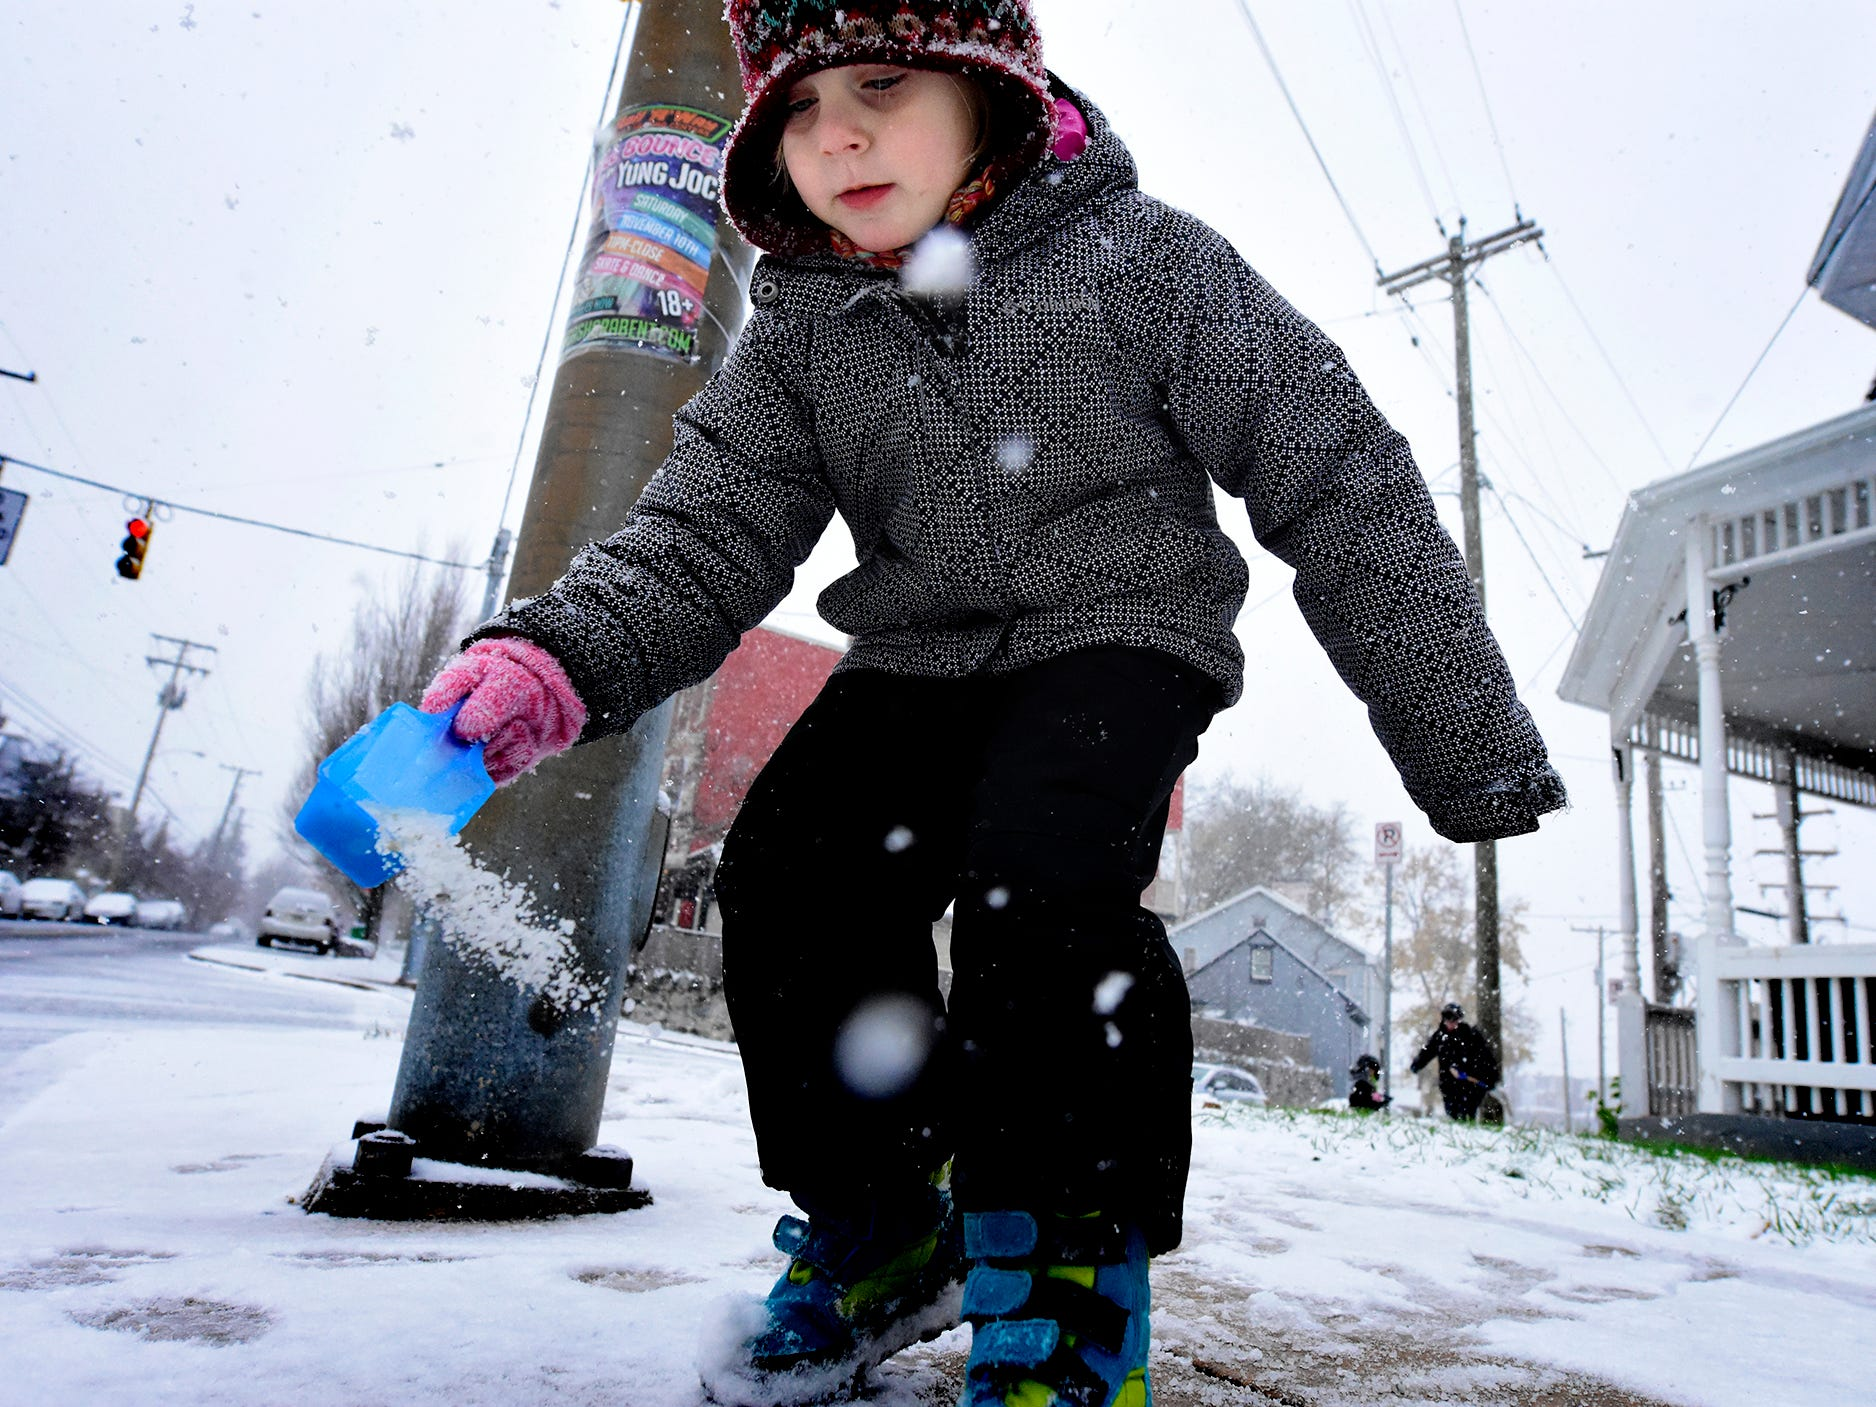 Rosie Nowak, 4, spreads salt while clearing sidewalks with  her mother Ellie and brother Anthony, 2, outside their home along Hamilton Ave. in York City Thursday, Nov. 15, 2018. Ellie said it was her children's first snow shoveling experience. Parts of York County could get as much as 6-7 inches of snow according to forecasters. Bill Kalina photo